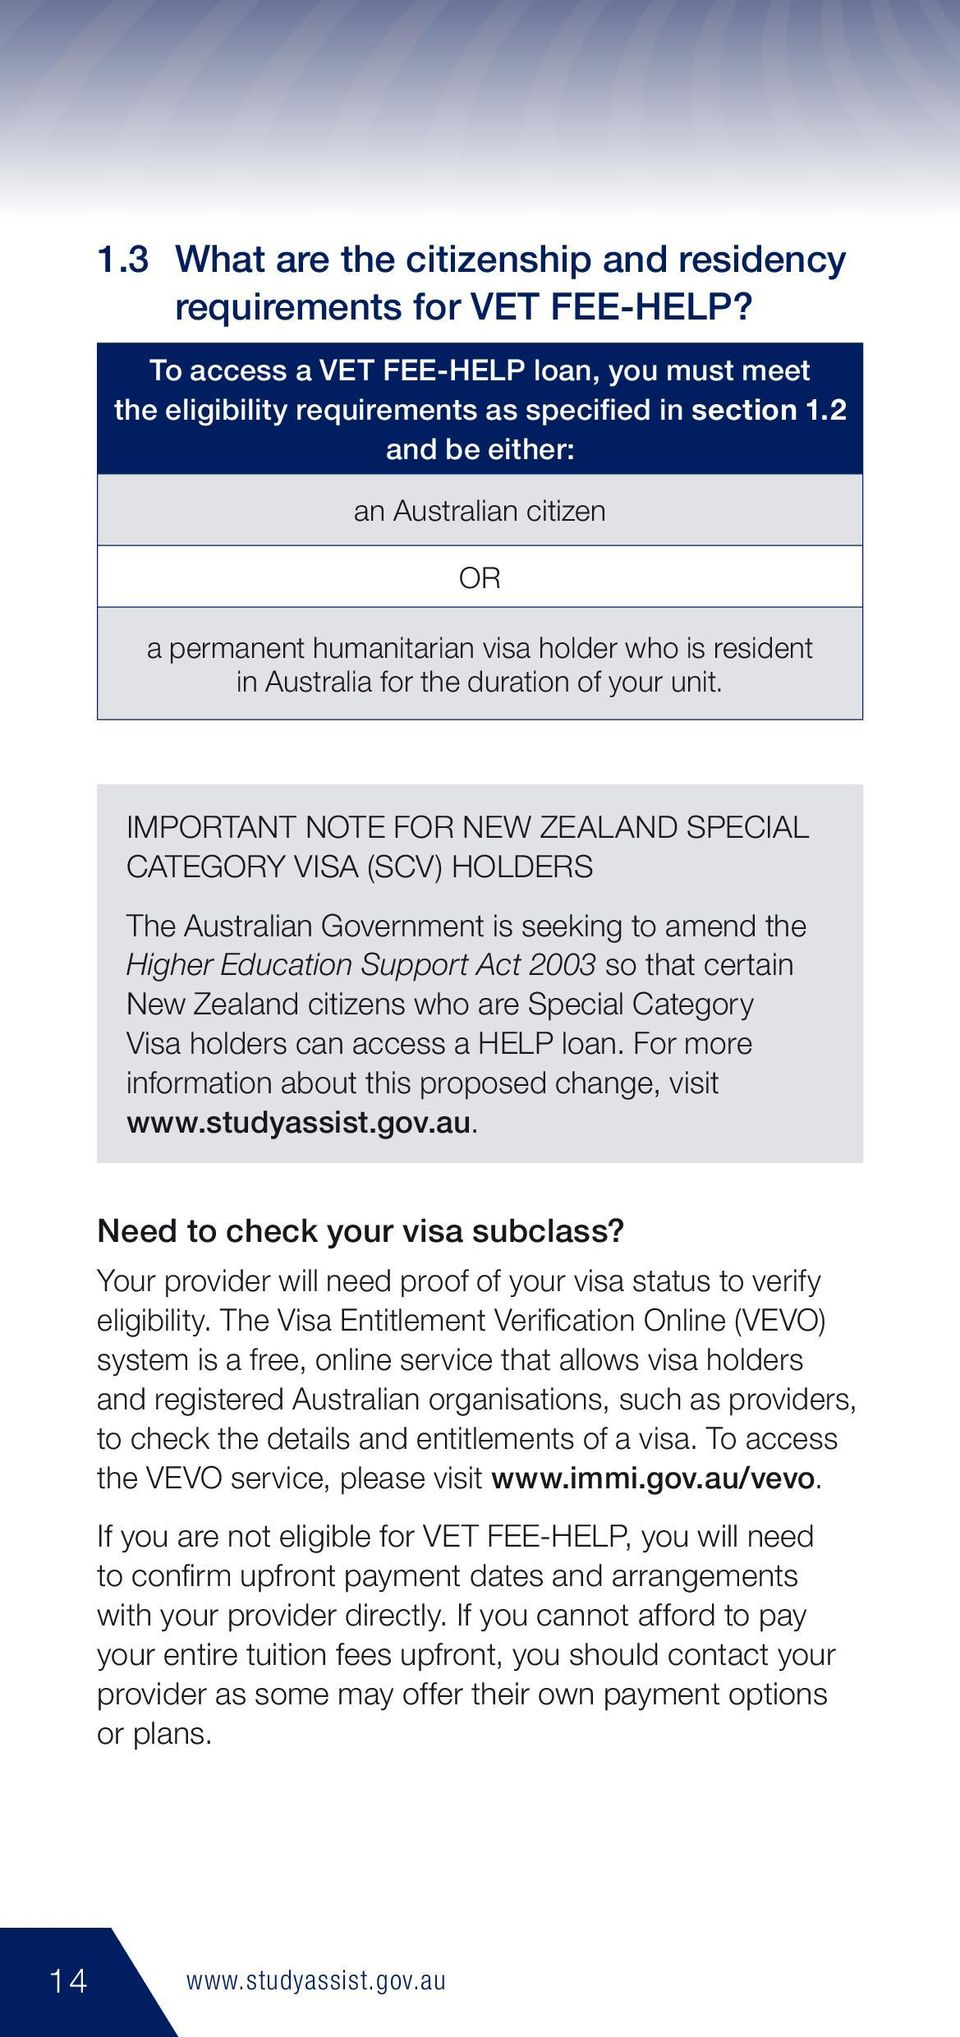 IMPORTANT NOTE FOR NEW ZEALAND SPECIAL CATEGORY VISA (SCV) HOLDERS The Australian Government is seeking to amend the Higher Education Support Act 2003 so that certain New Zealand citizens who are